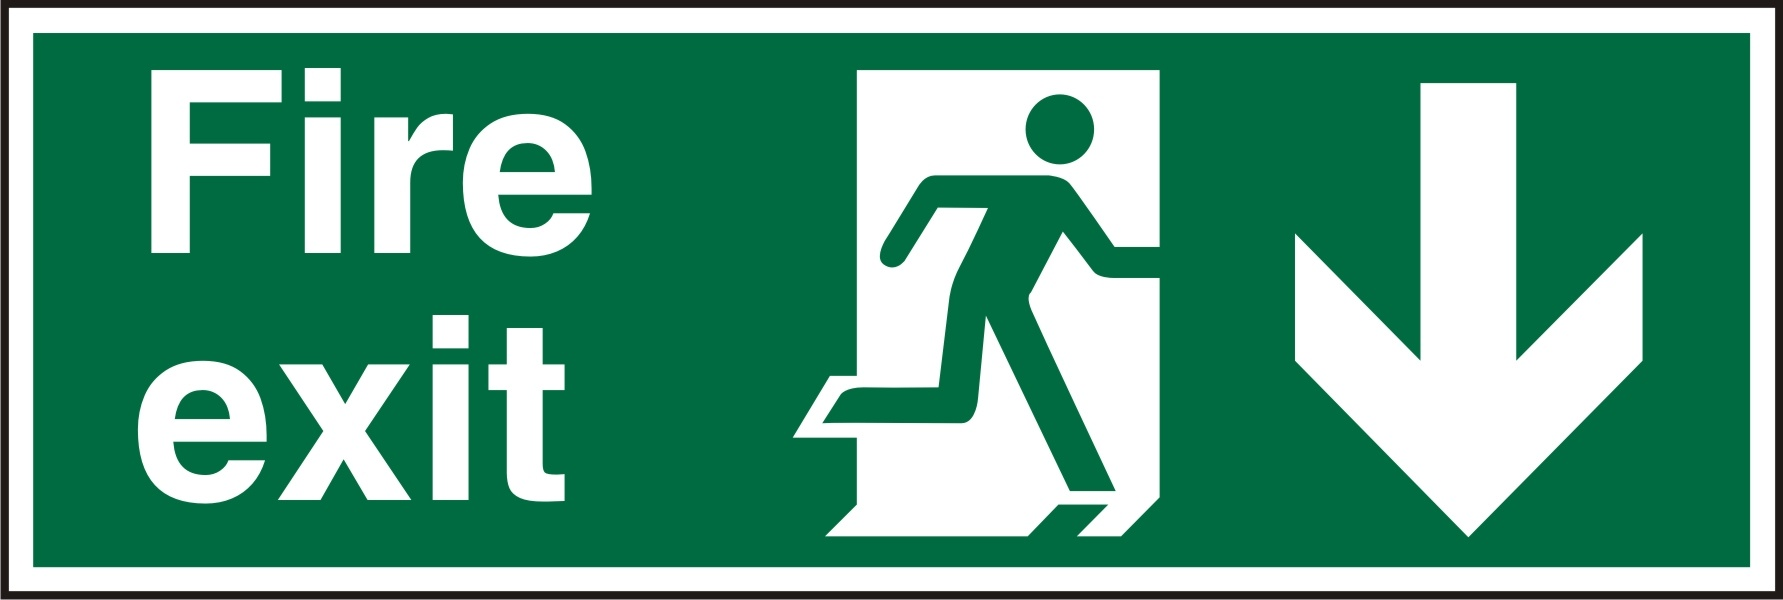 Exit Signs Pictures | Free Download Best Exit Signs Pictures On - Free Printable Exit Signs With Arrow